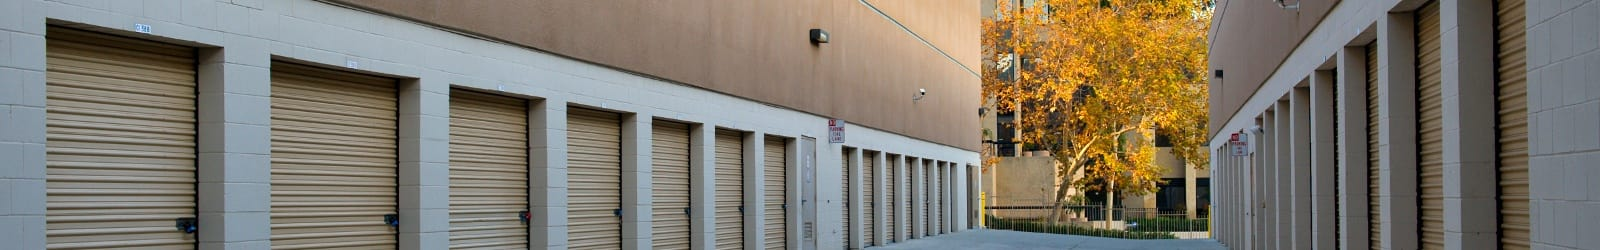 Sorrento Valley Self Storage Unit Sizes and Prices